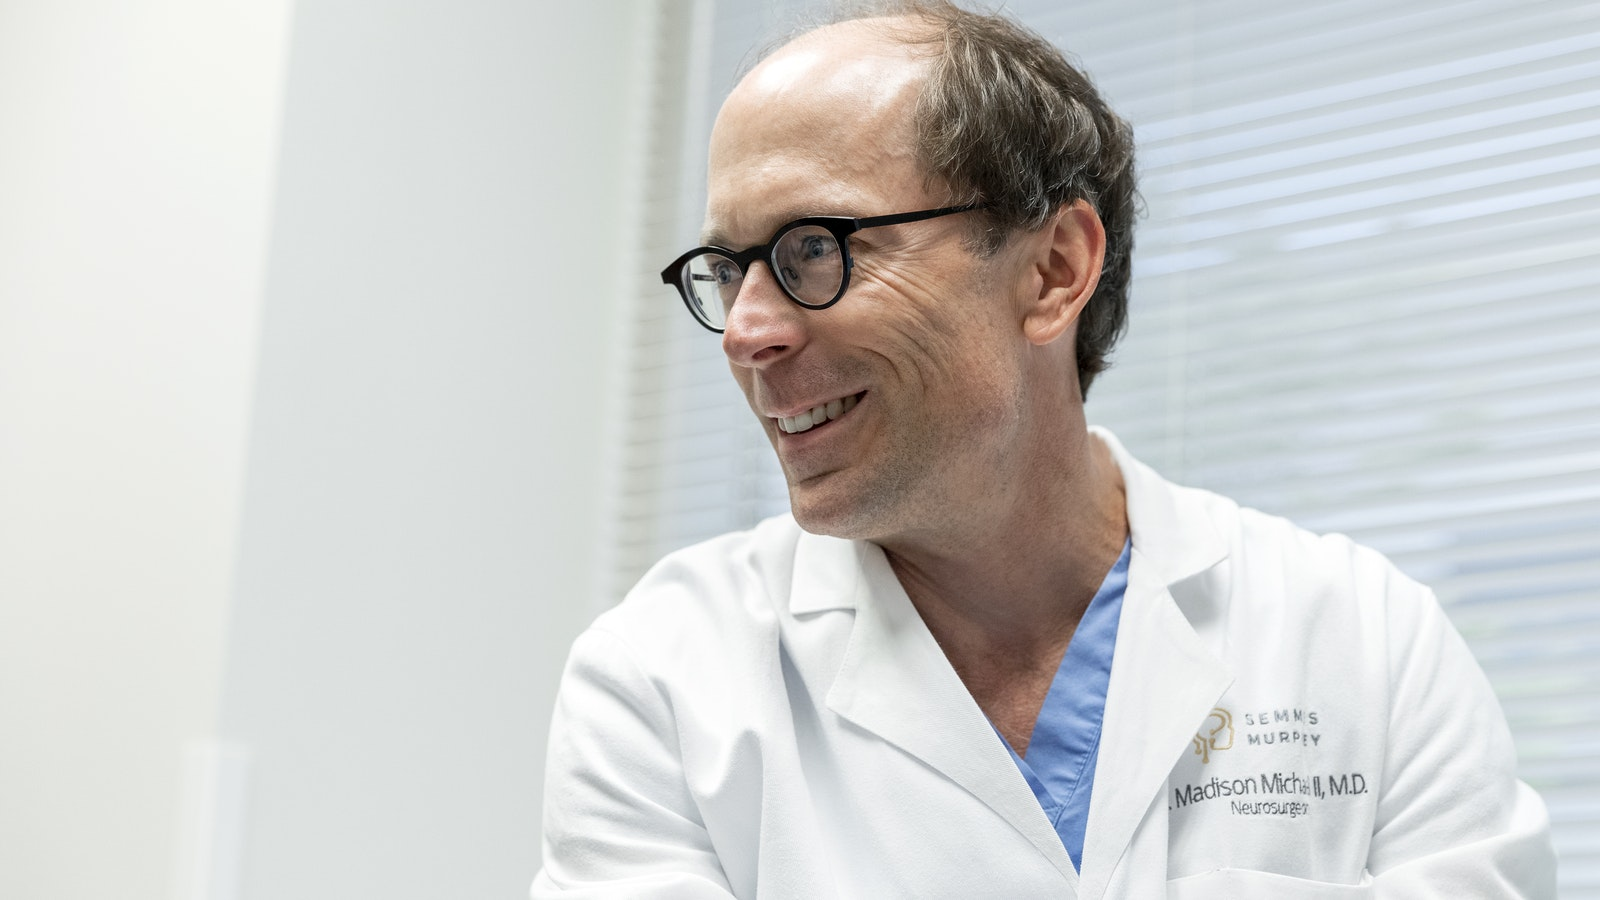 A doctor in a lab coat and glasses smiling and looking to the left